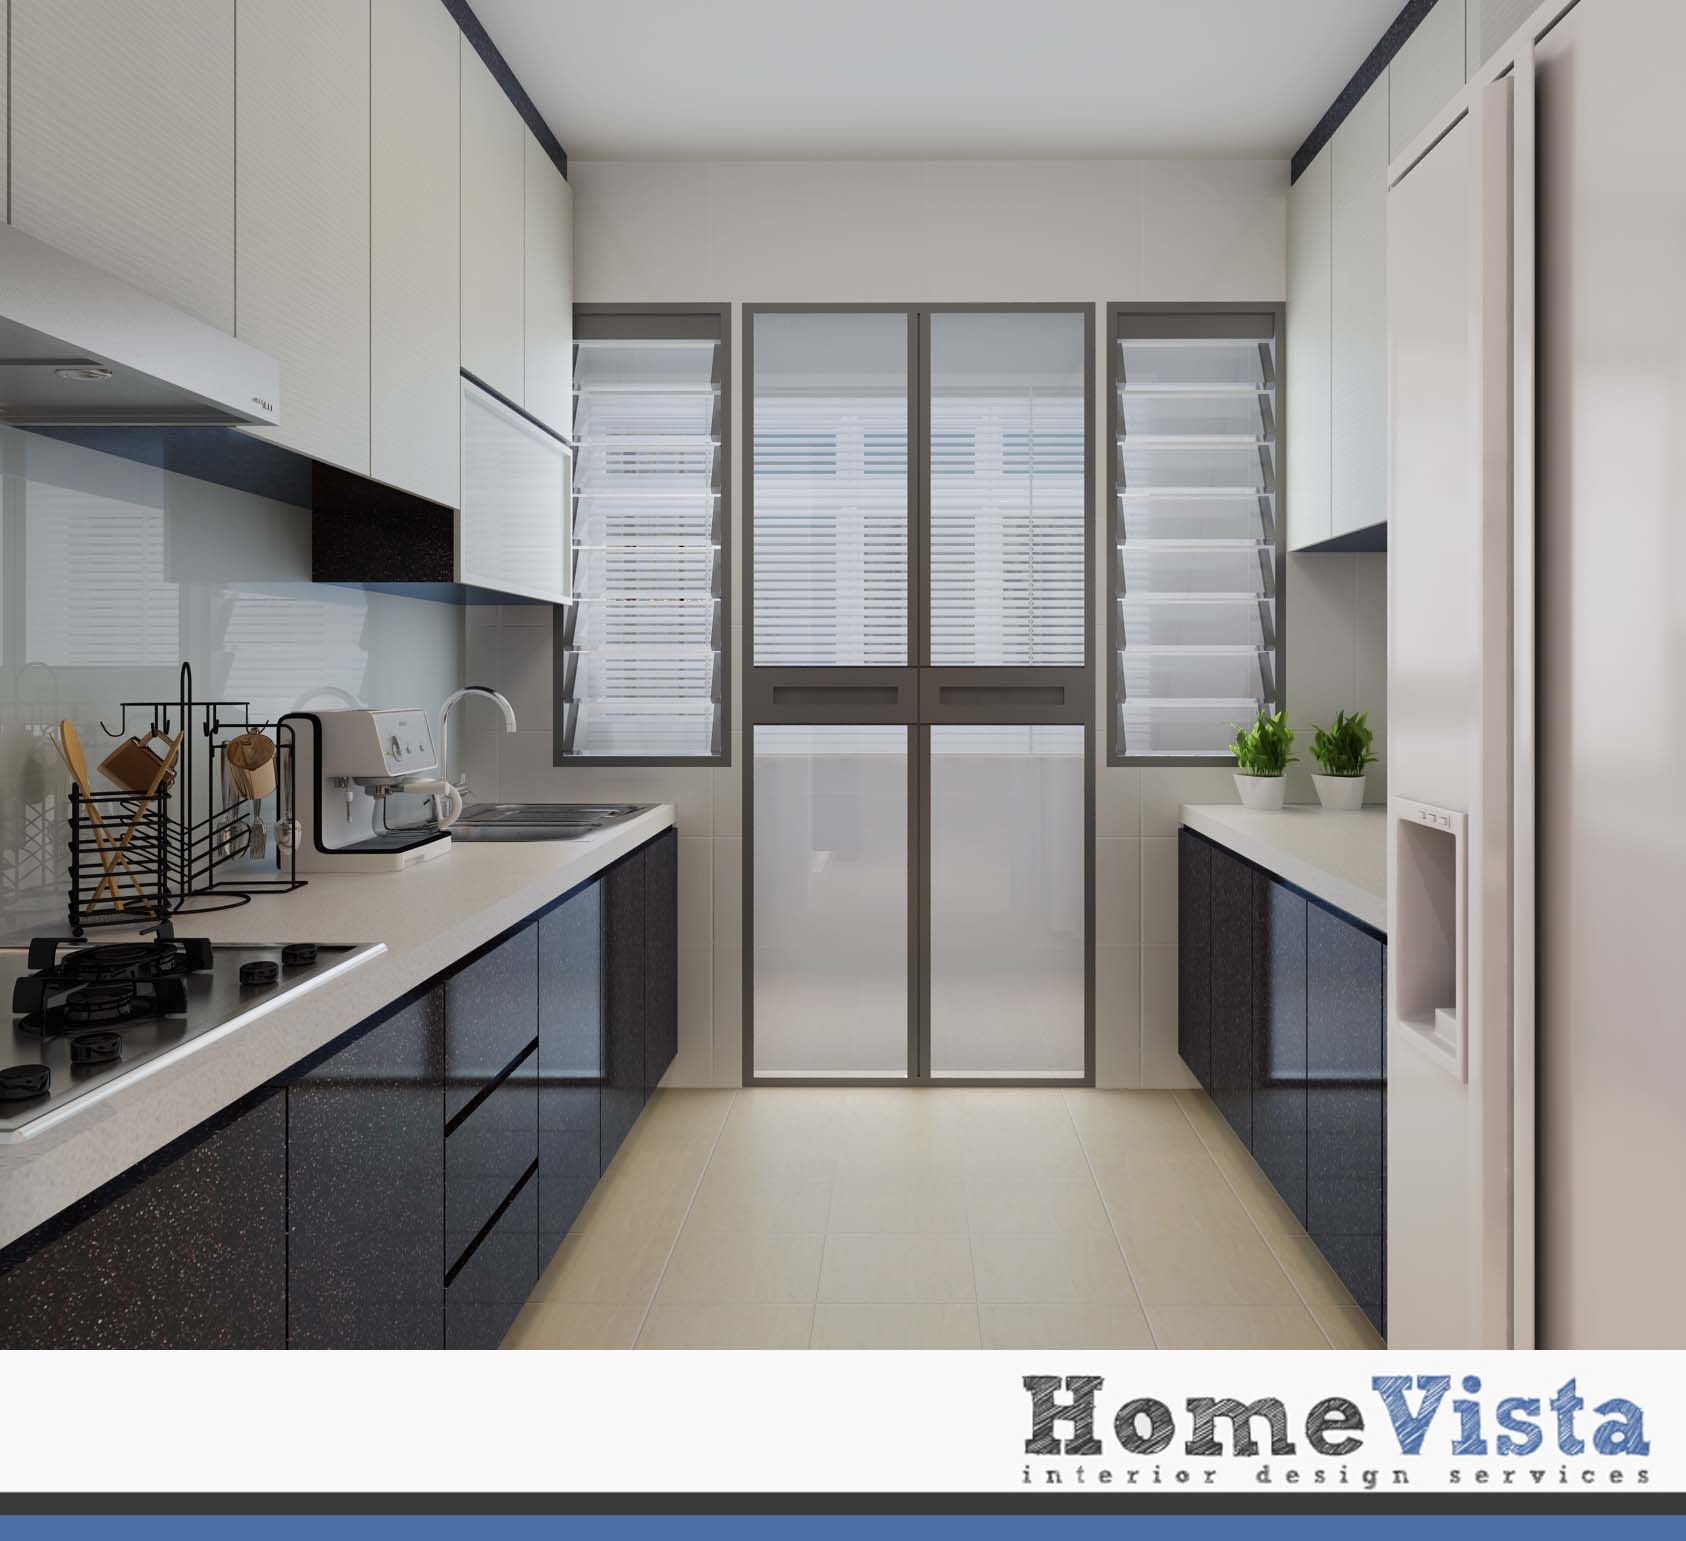 Kitchen Design Houston Amazing 4 Room Bto  Yishun Hdb Bto  Homevista  Interior  Pinterest Review